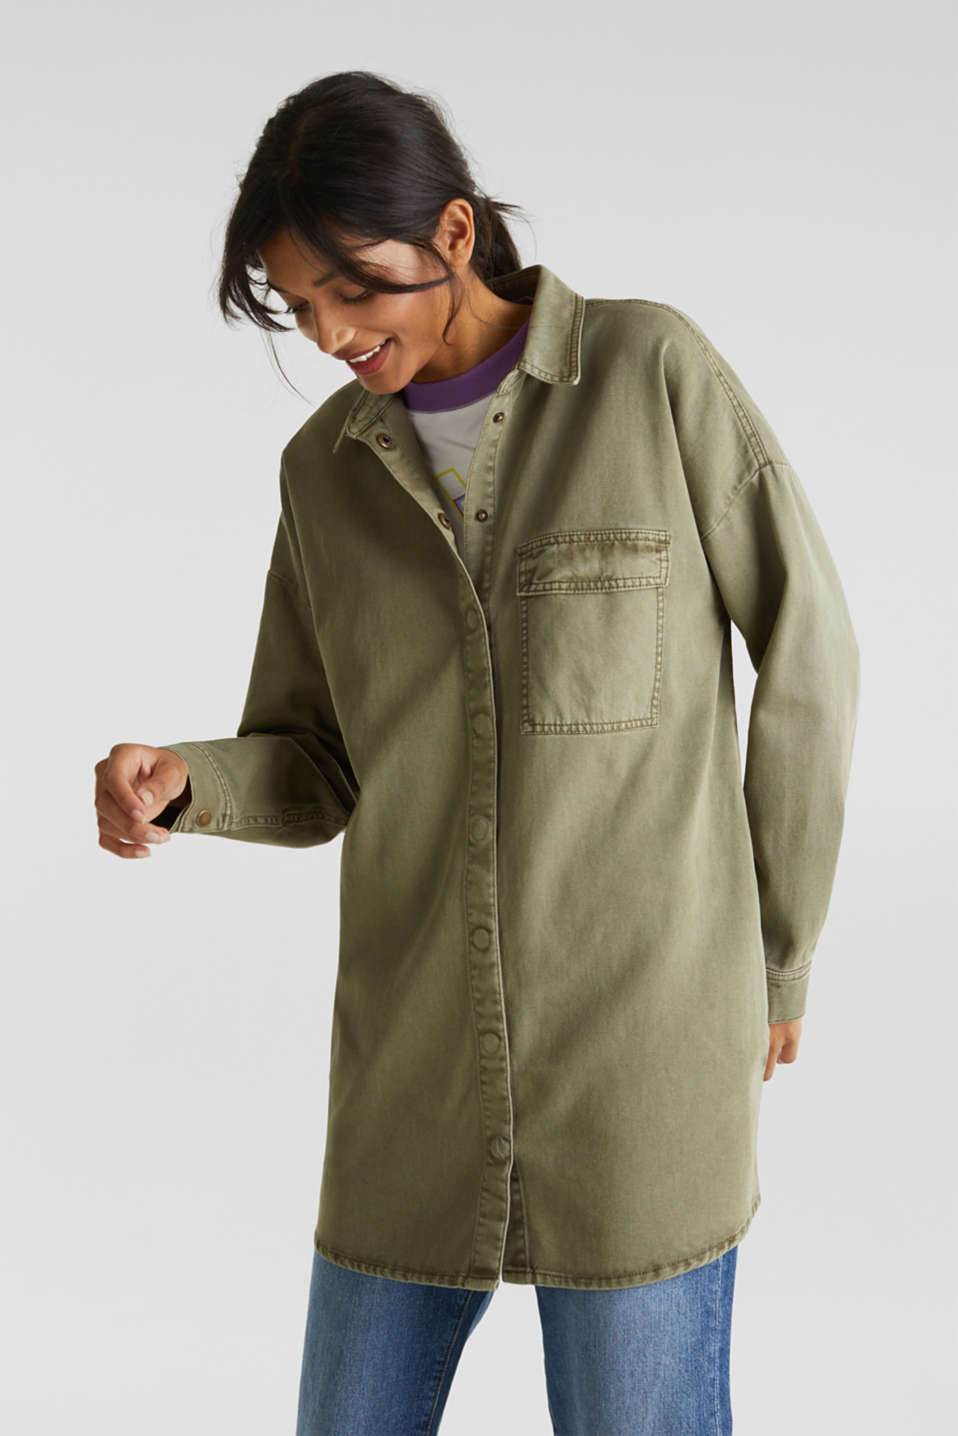 Blouse jacket made of canvas, 100% cotton, KHAKI GREEN, detail image number 7